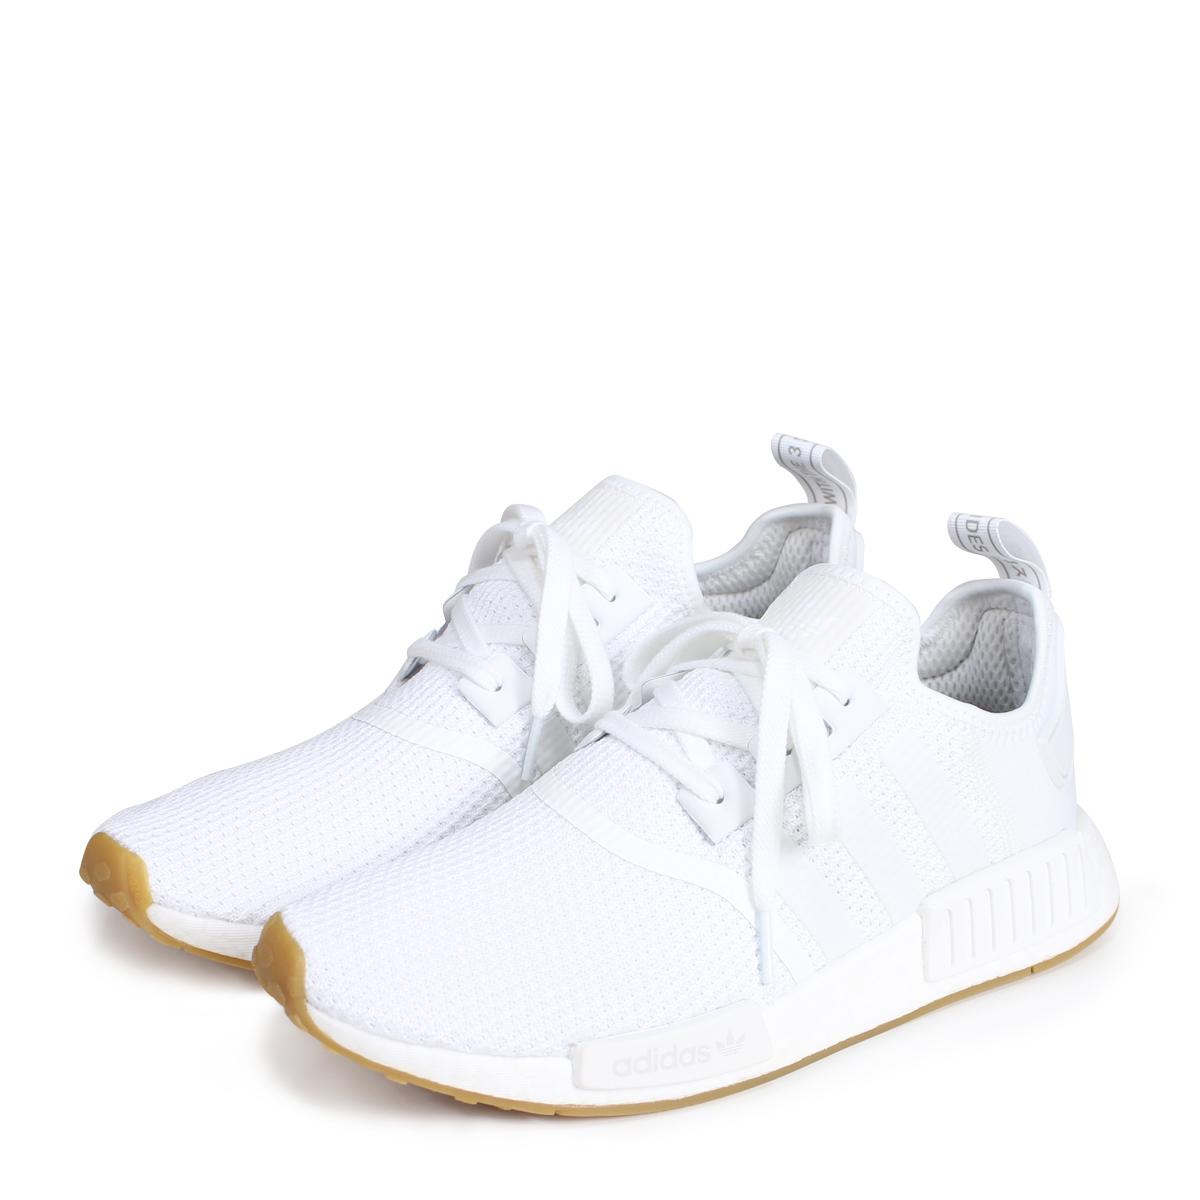 afdd9b329 adidas originals NMD R1 Adidas originals sneakers N M D nomad men D96635  white  load planned Shinnyu load in reservation product 7 7 containing    187